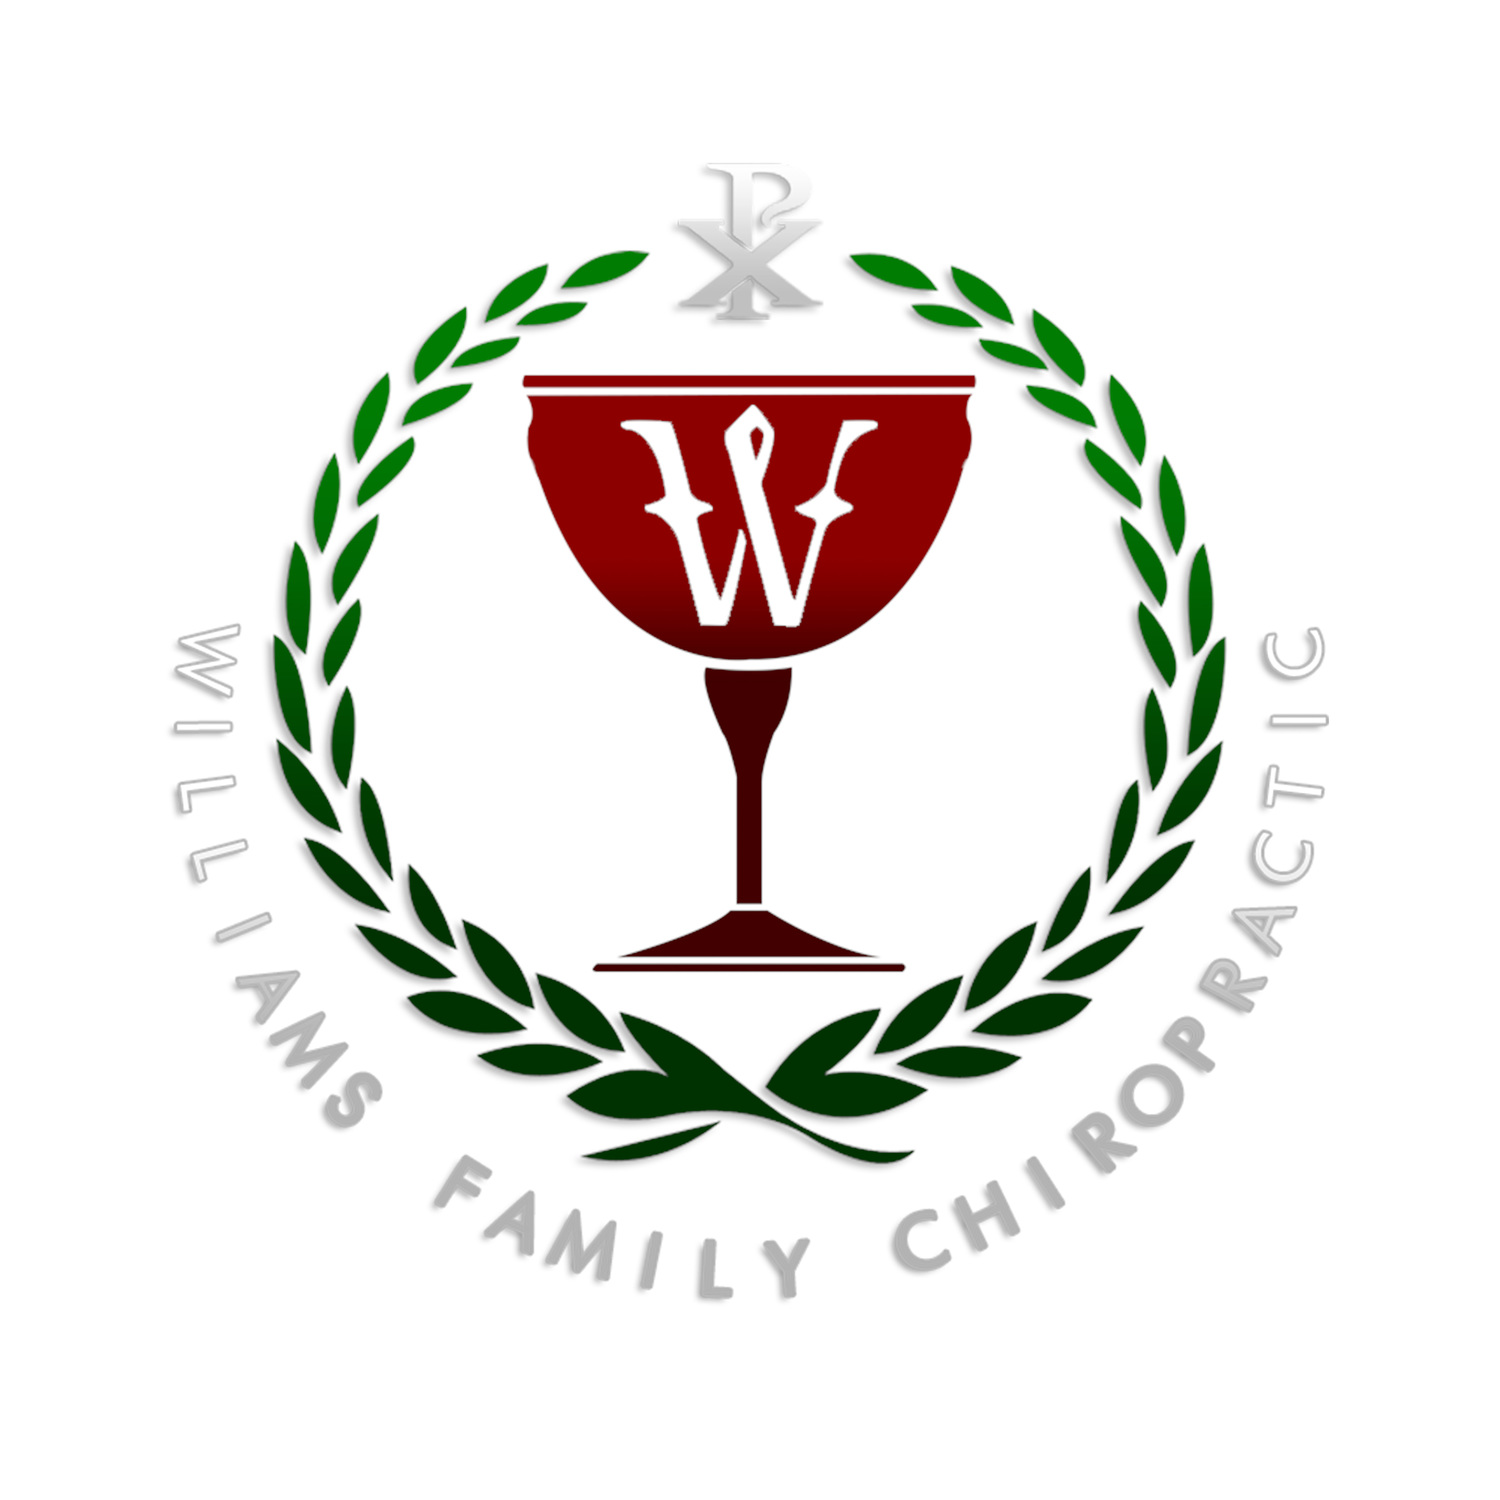 Williams Family Chiropractor